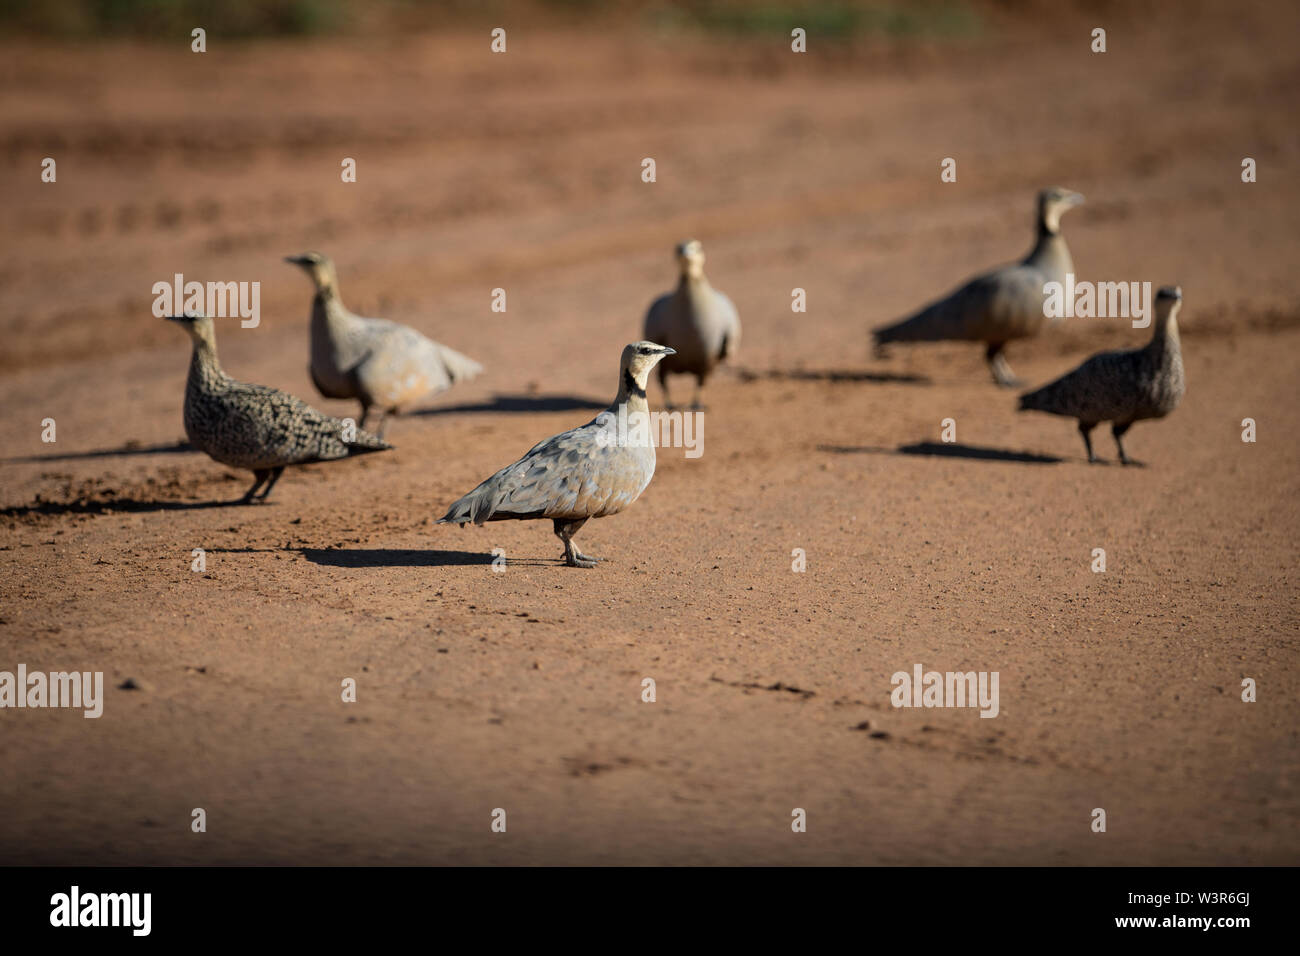 A small flock of Yellow-throated Sandgrouse, Pterocles gutturalis, gathers on road, Madikwe Game Reserve, North West Province, South Africa at sunset Stock Photo